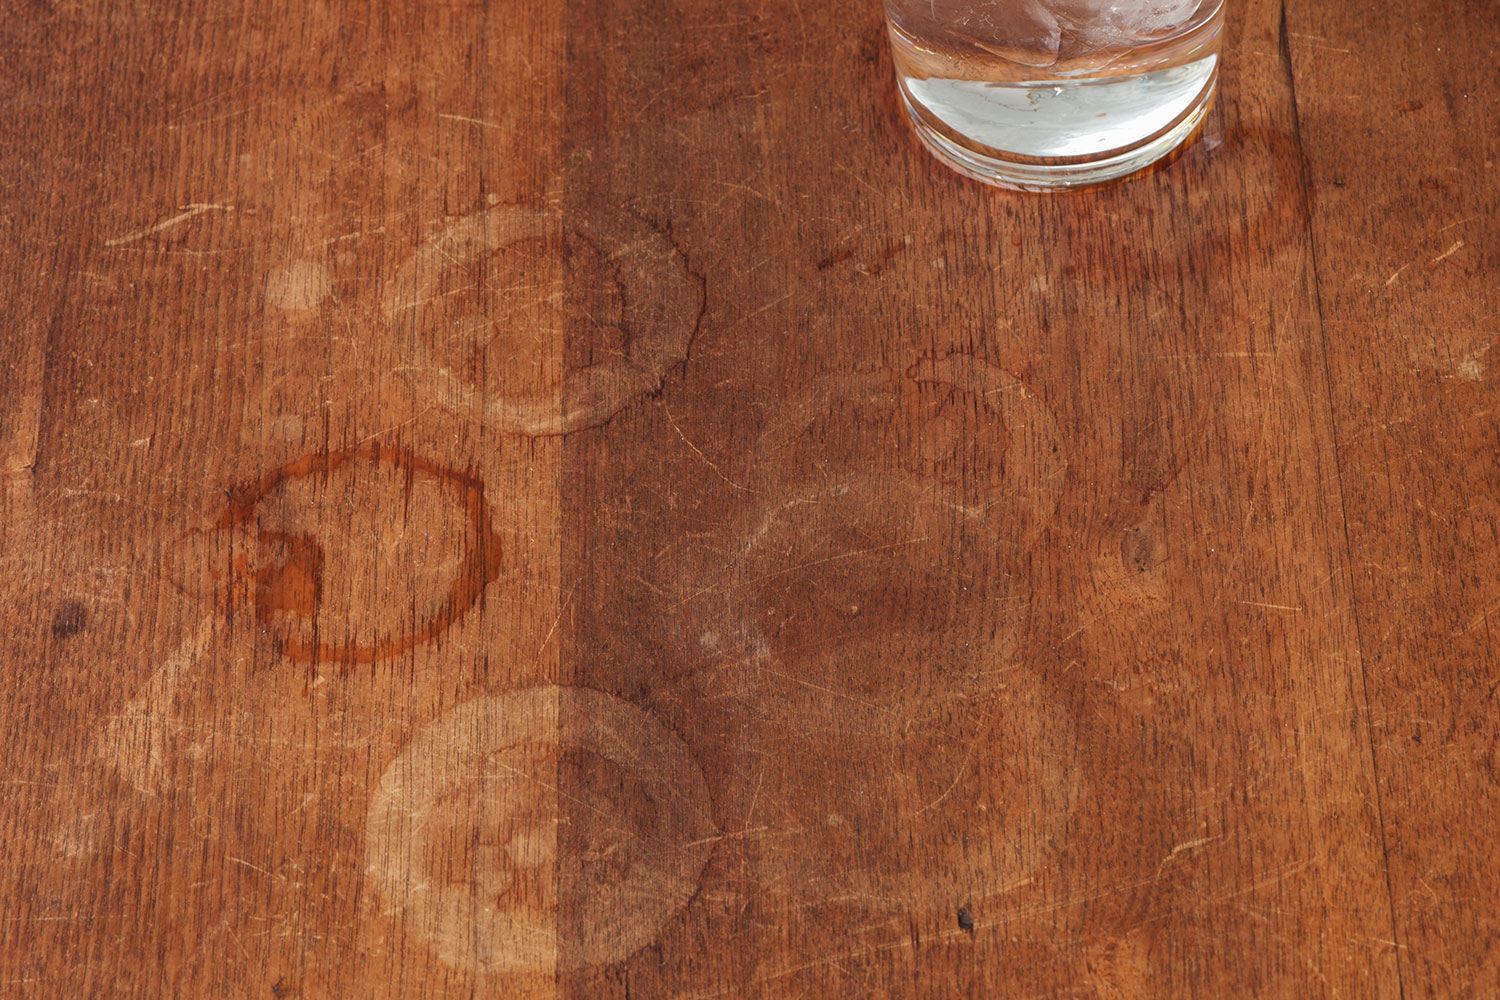 How To Remove Water Stains From Wood Better Homes And